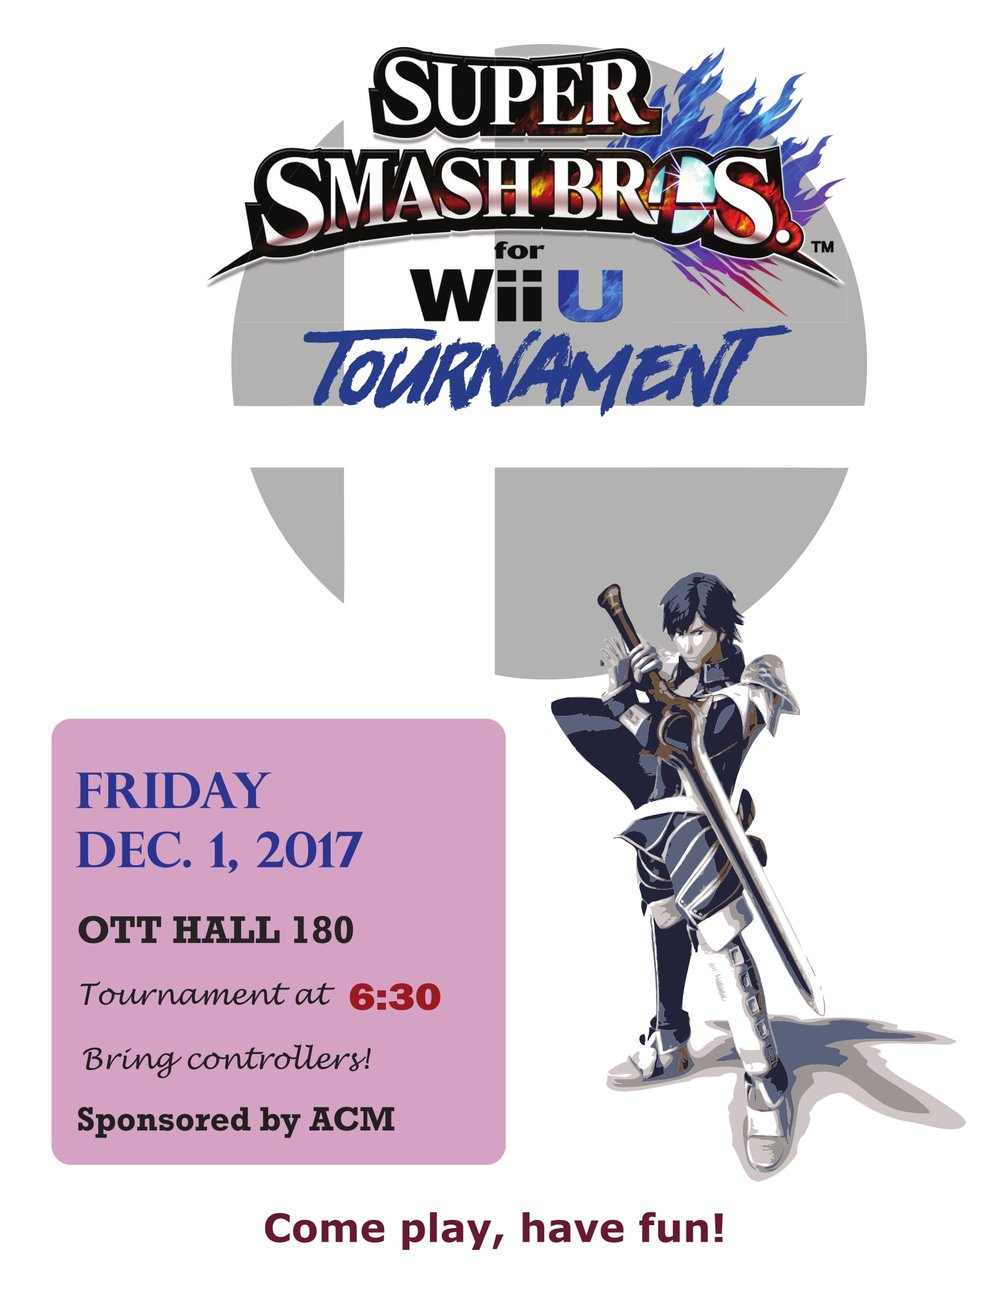 Smash Bros Flyer Chrom Version copy-1.jpg